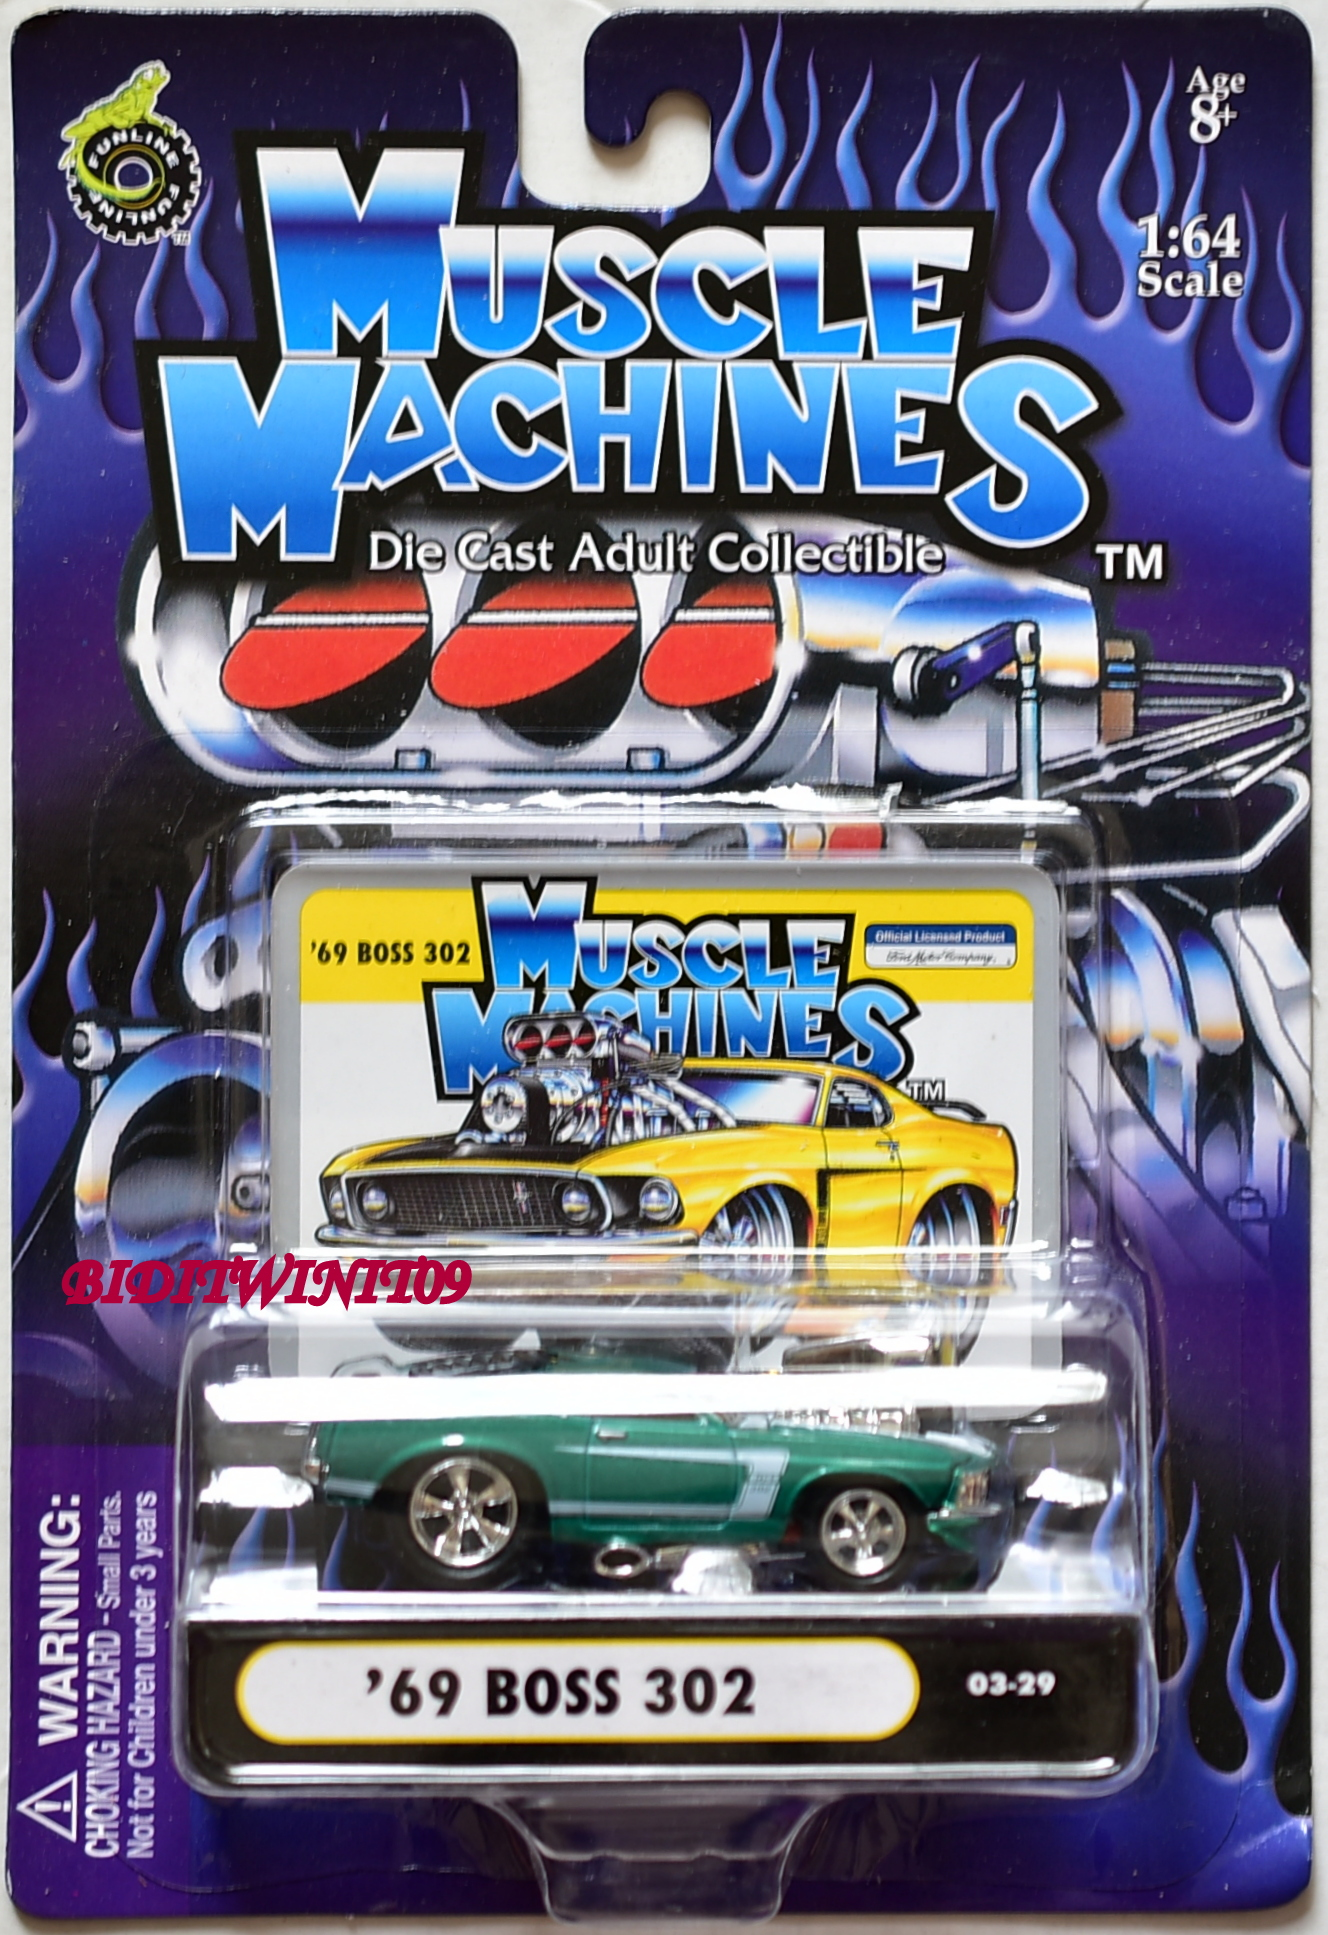 MUSCLE MACHINES '69 BOSS 302 03-29 GREEN 1:64 SCALE E+